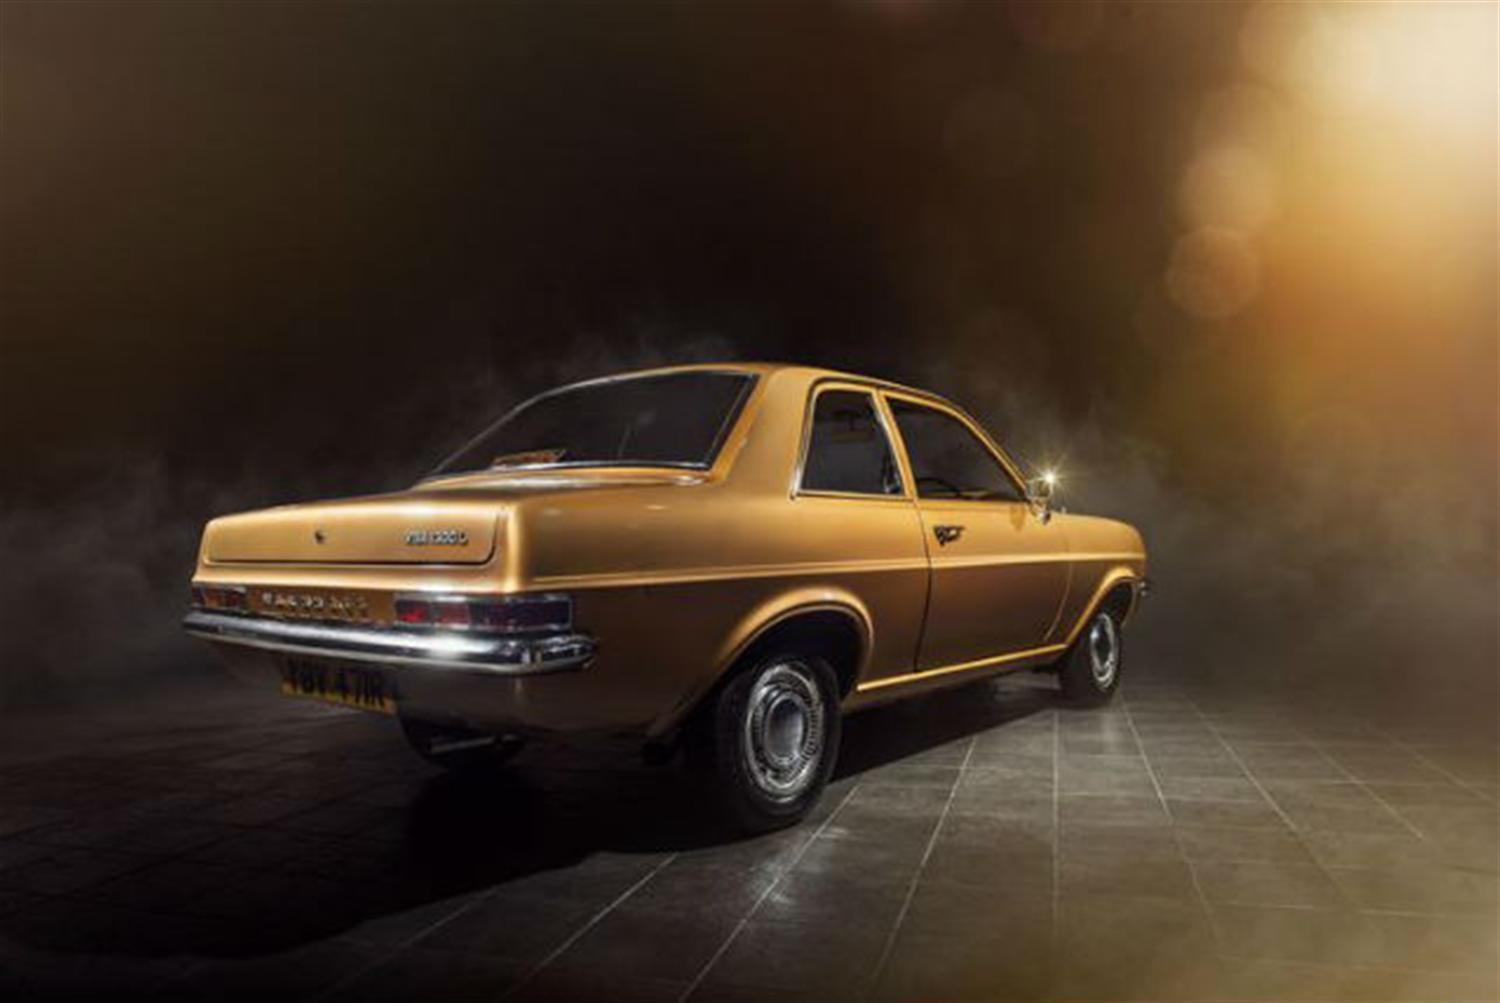 Classic Vauxhall Viva to be auctioned by Perrys